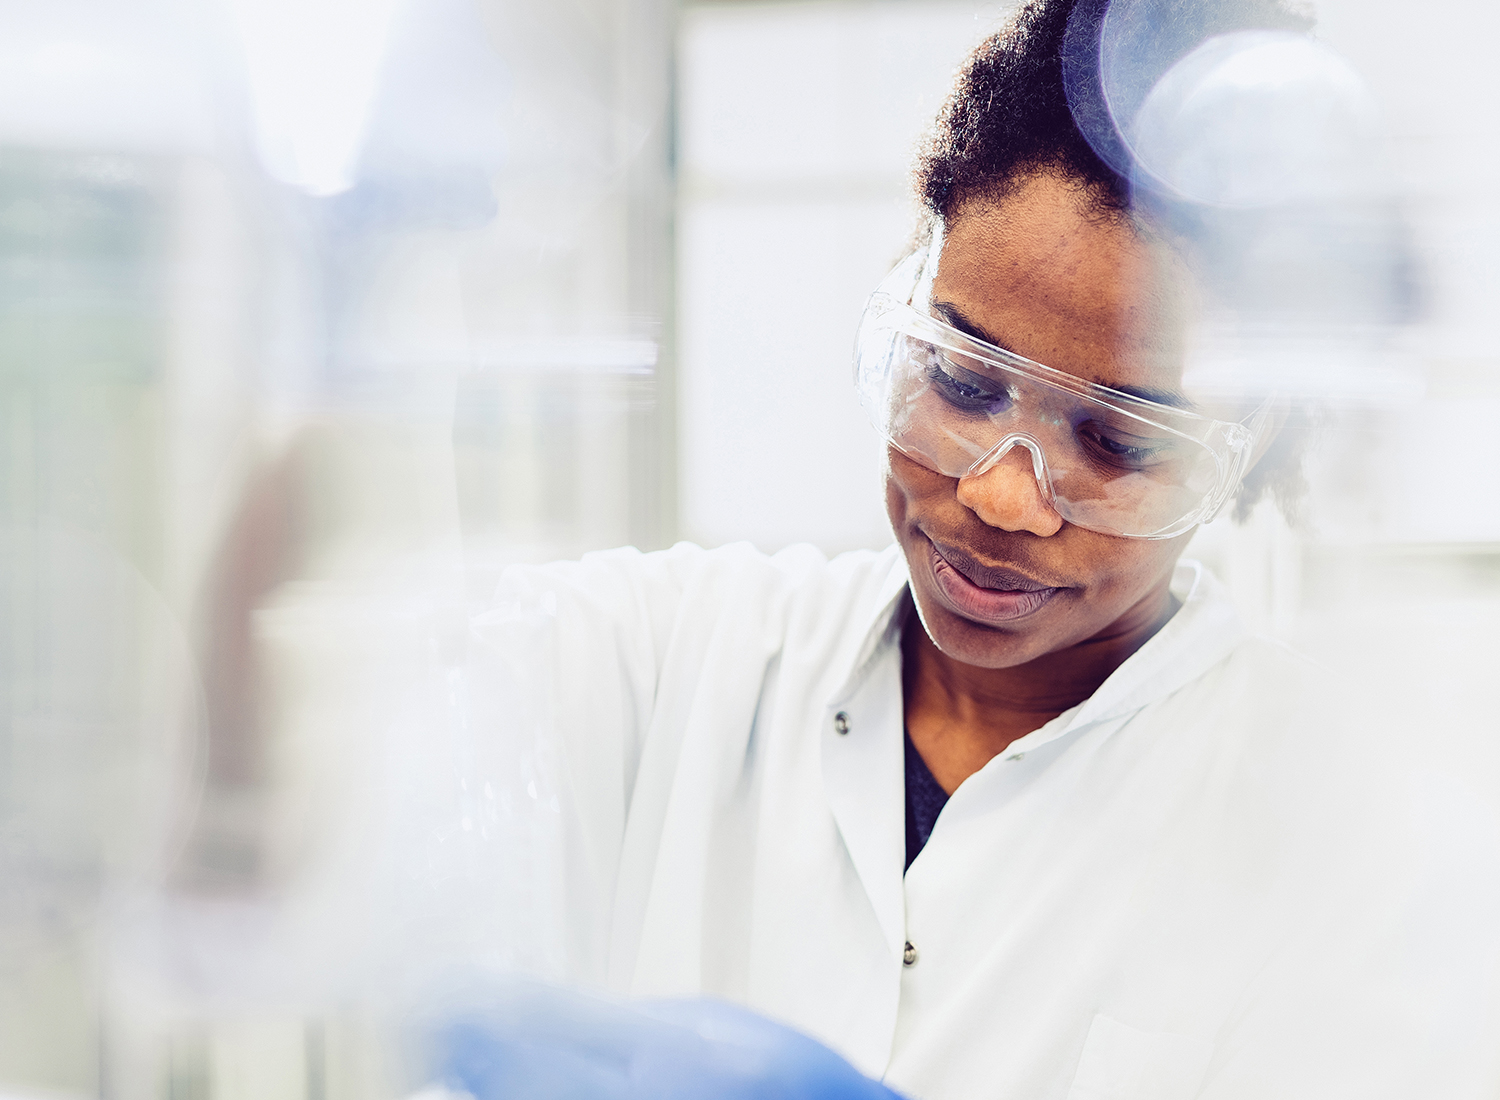 Female college student working in a lab.